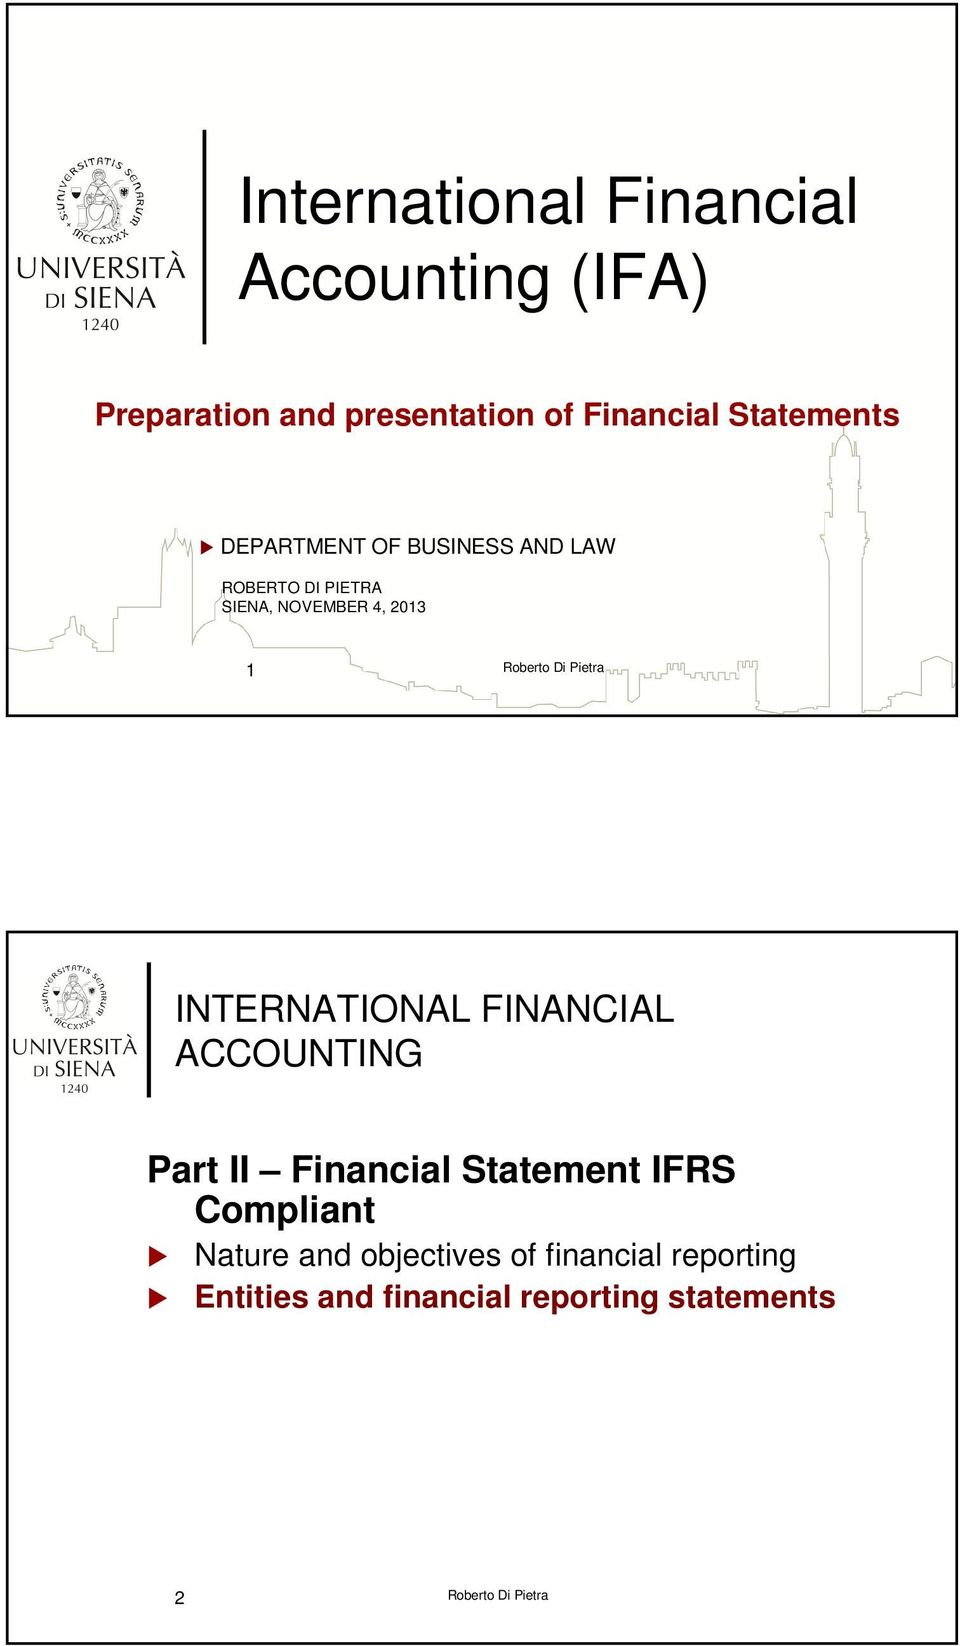 1 INTERNATIONAL FINANCIAL ACCOUNTING Part II Financial Statement IFRS Compliant